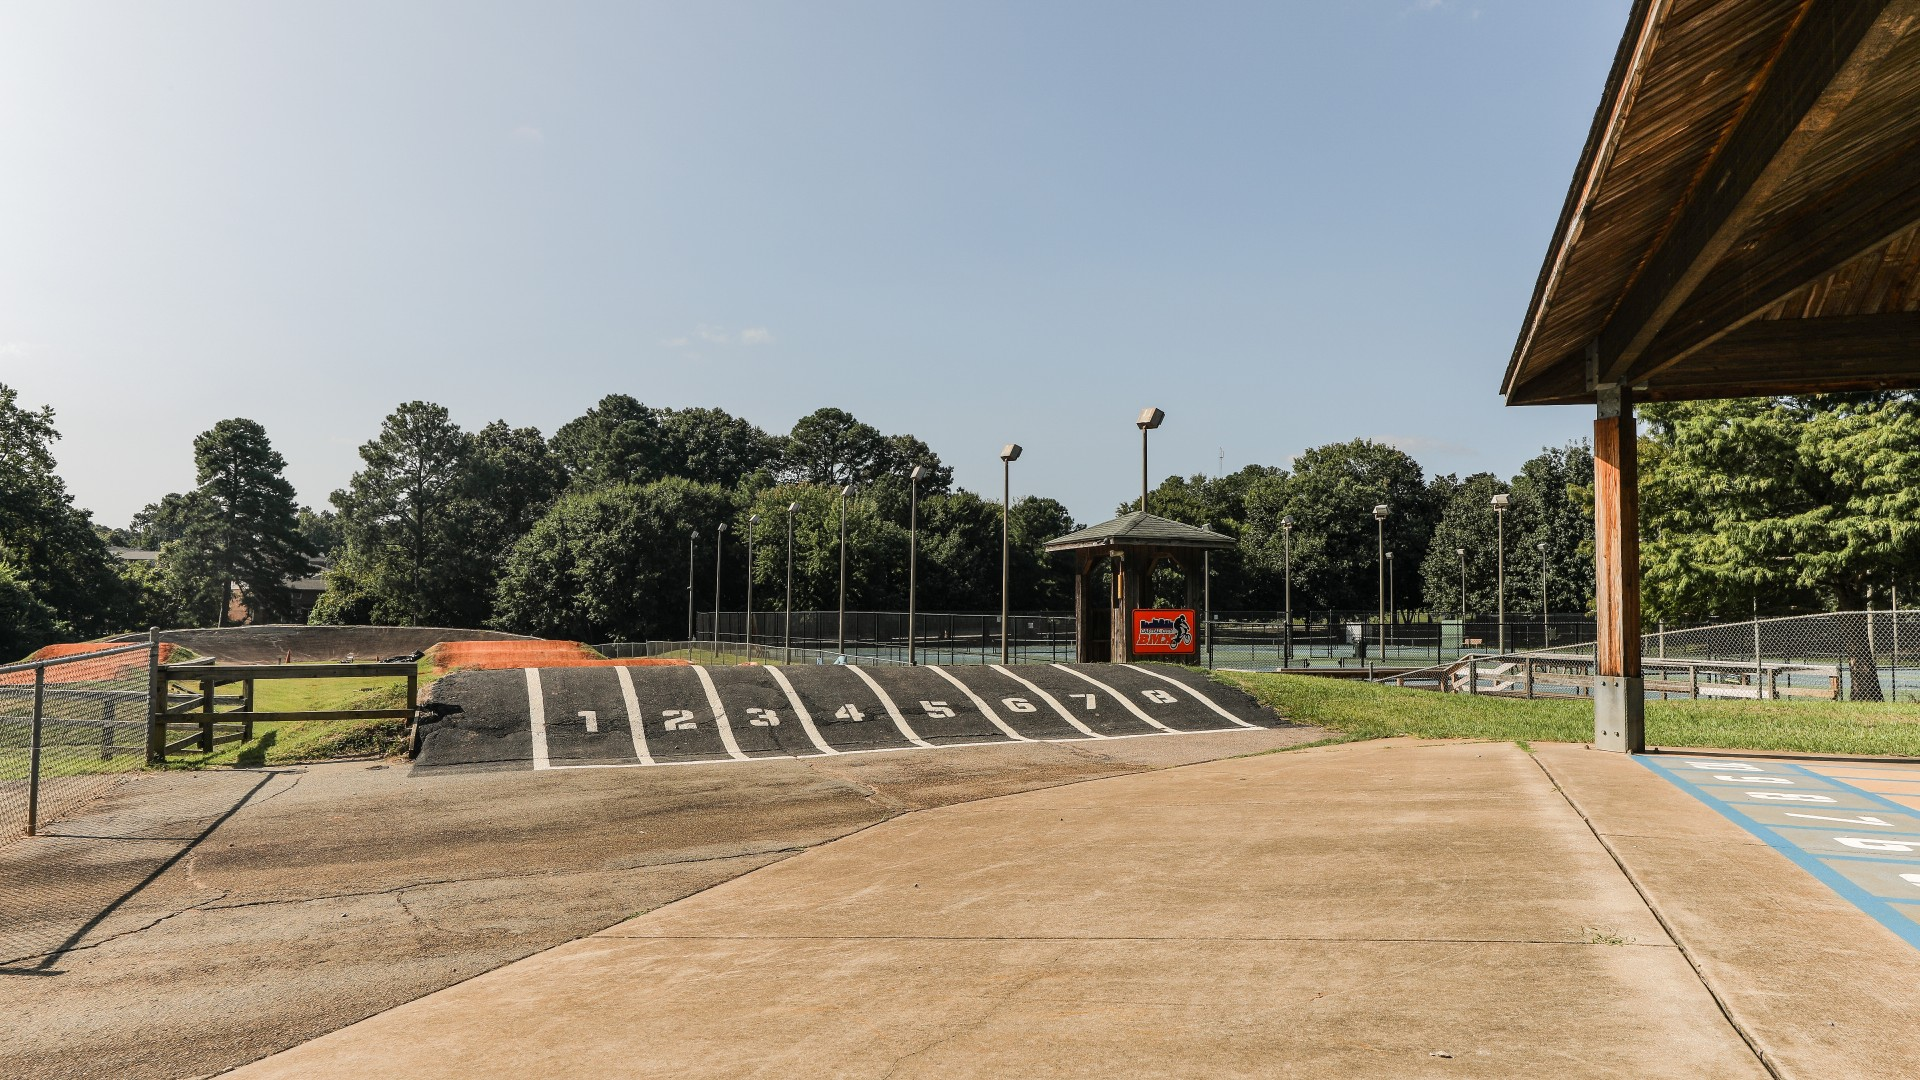 The start of the Capital City BMX track, with several dirt racing lanes